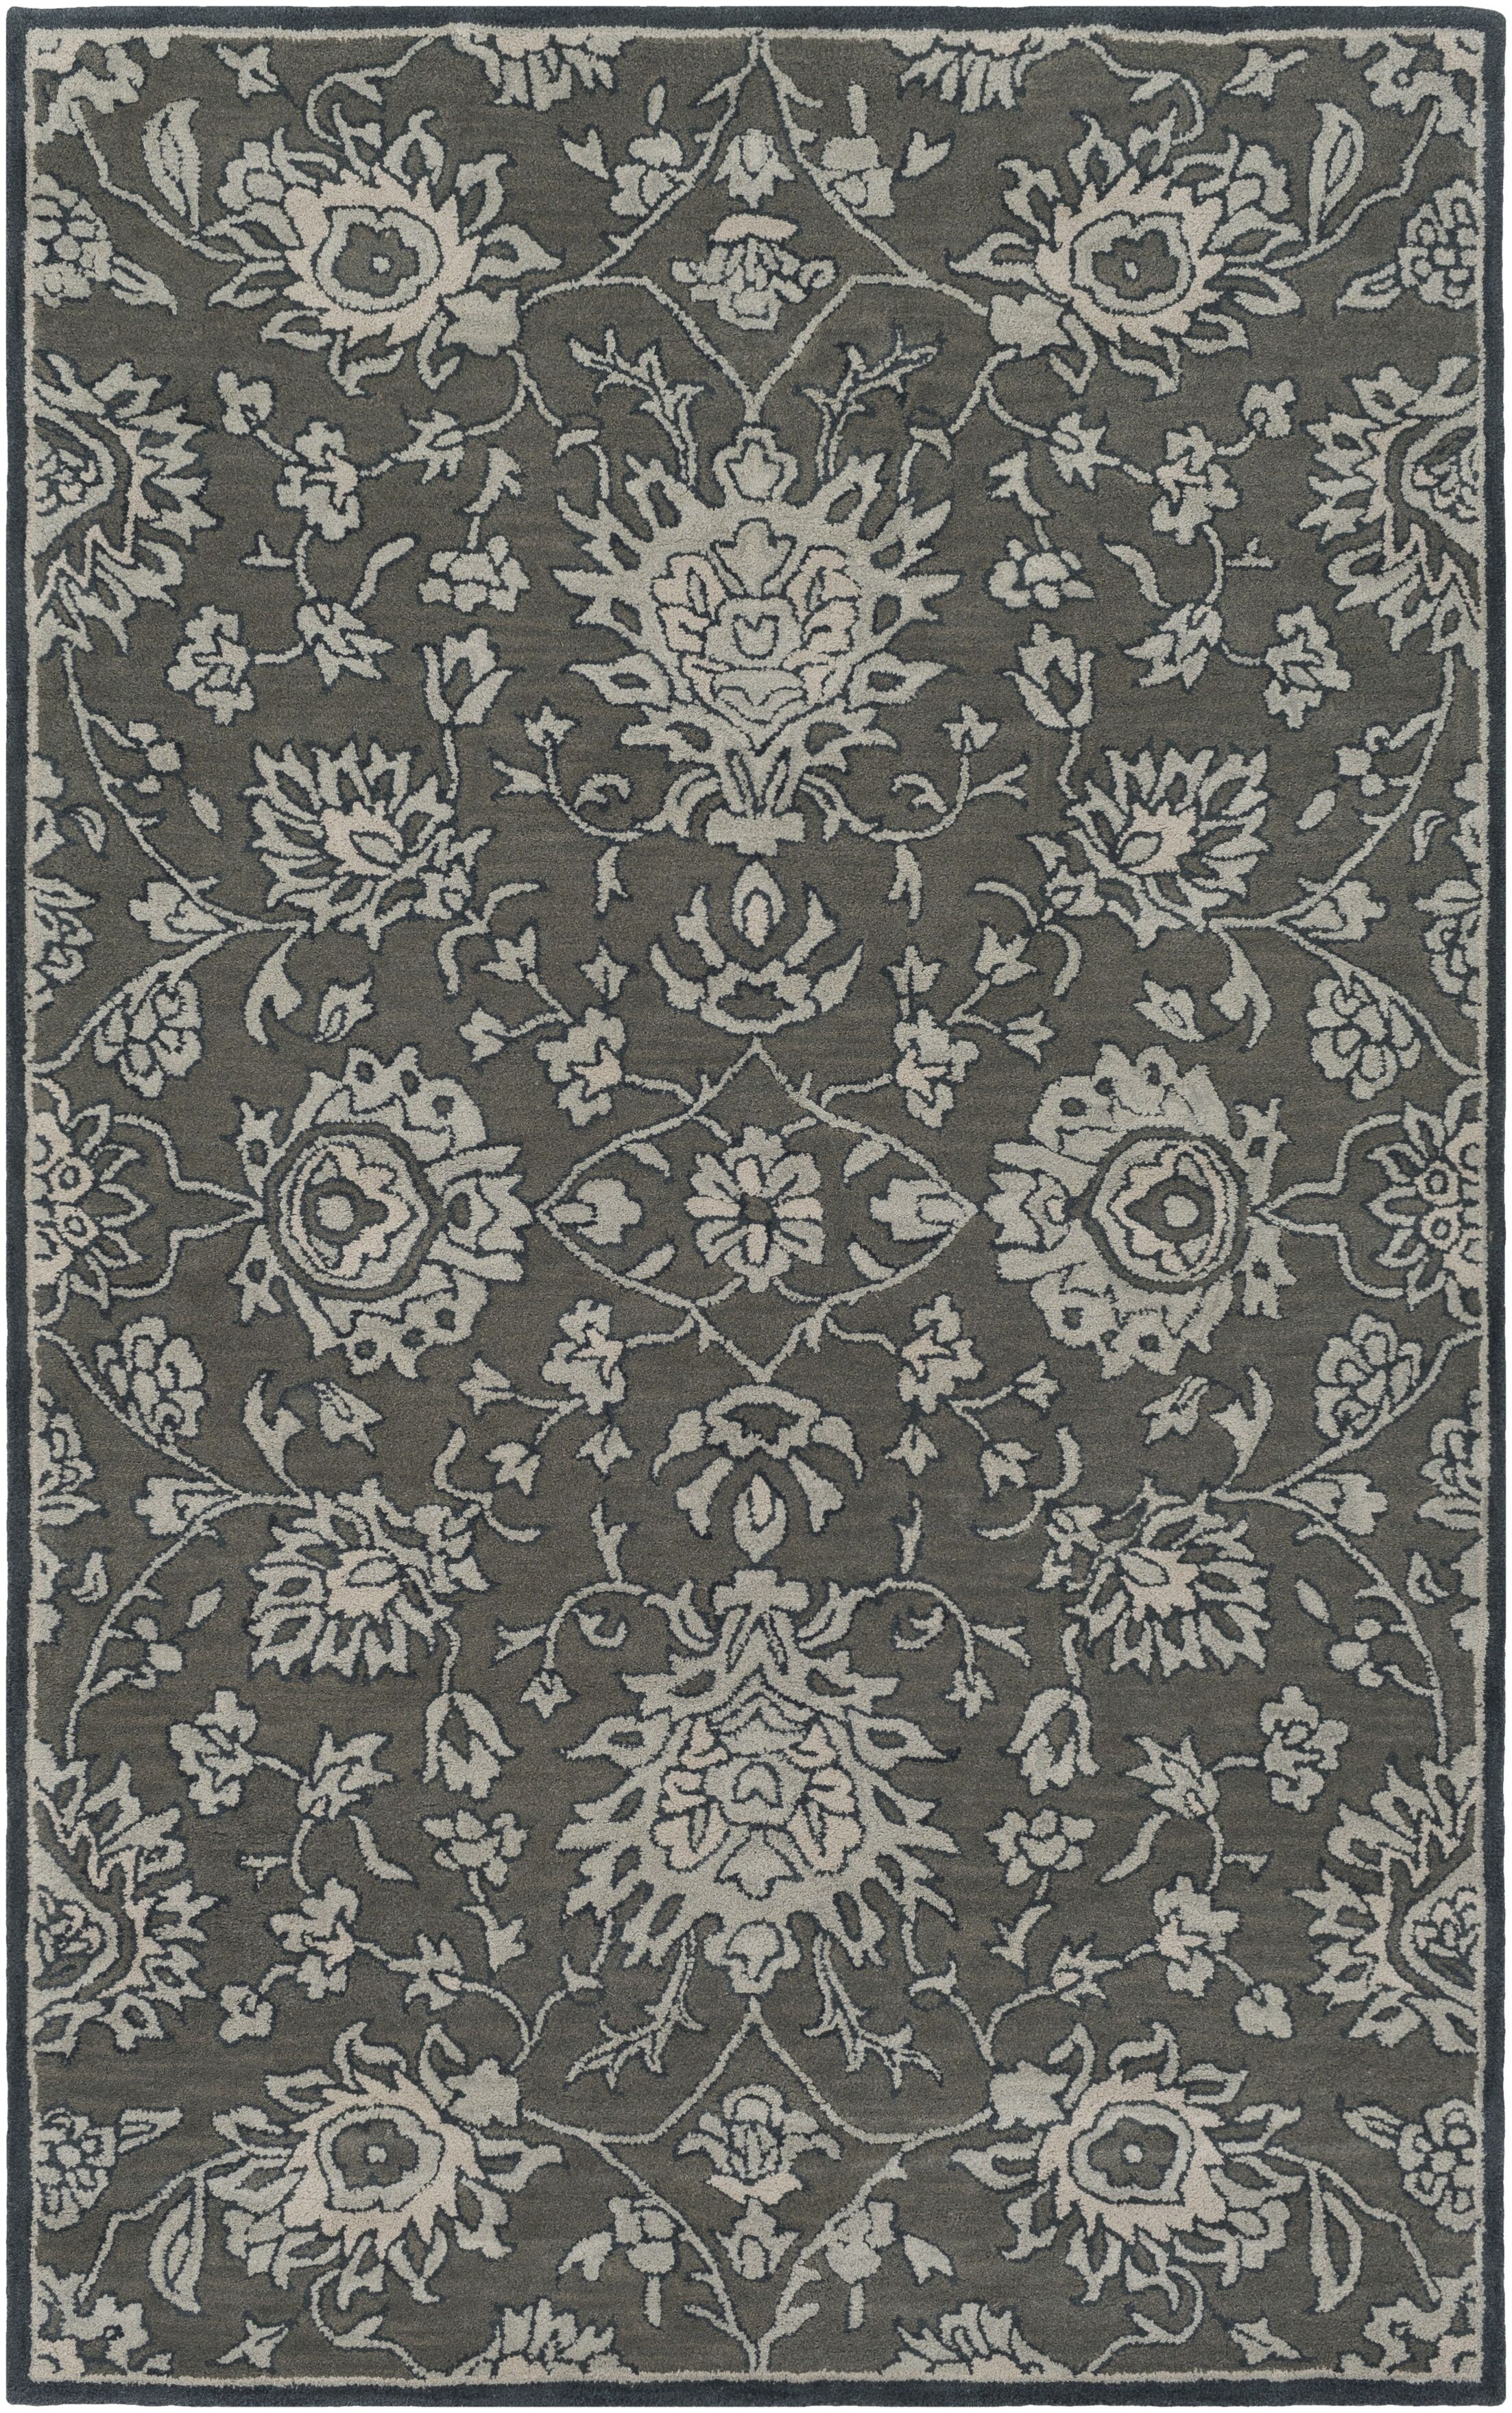 Keefer Hand-Tufted Wool Dark Brown Area Rug Rug Size: Rectangle 3'3